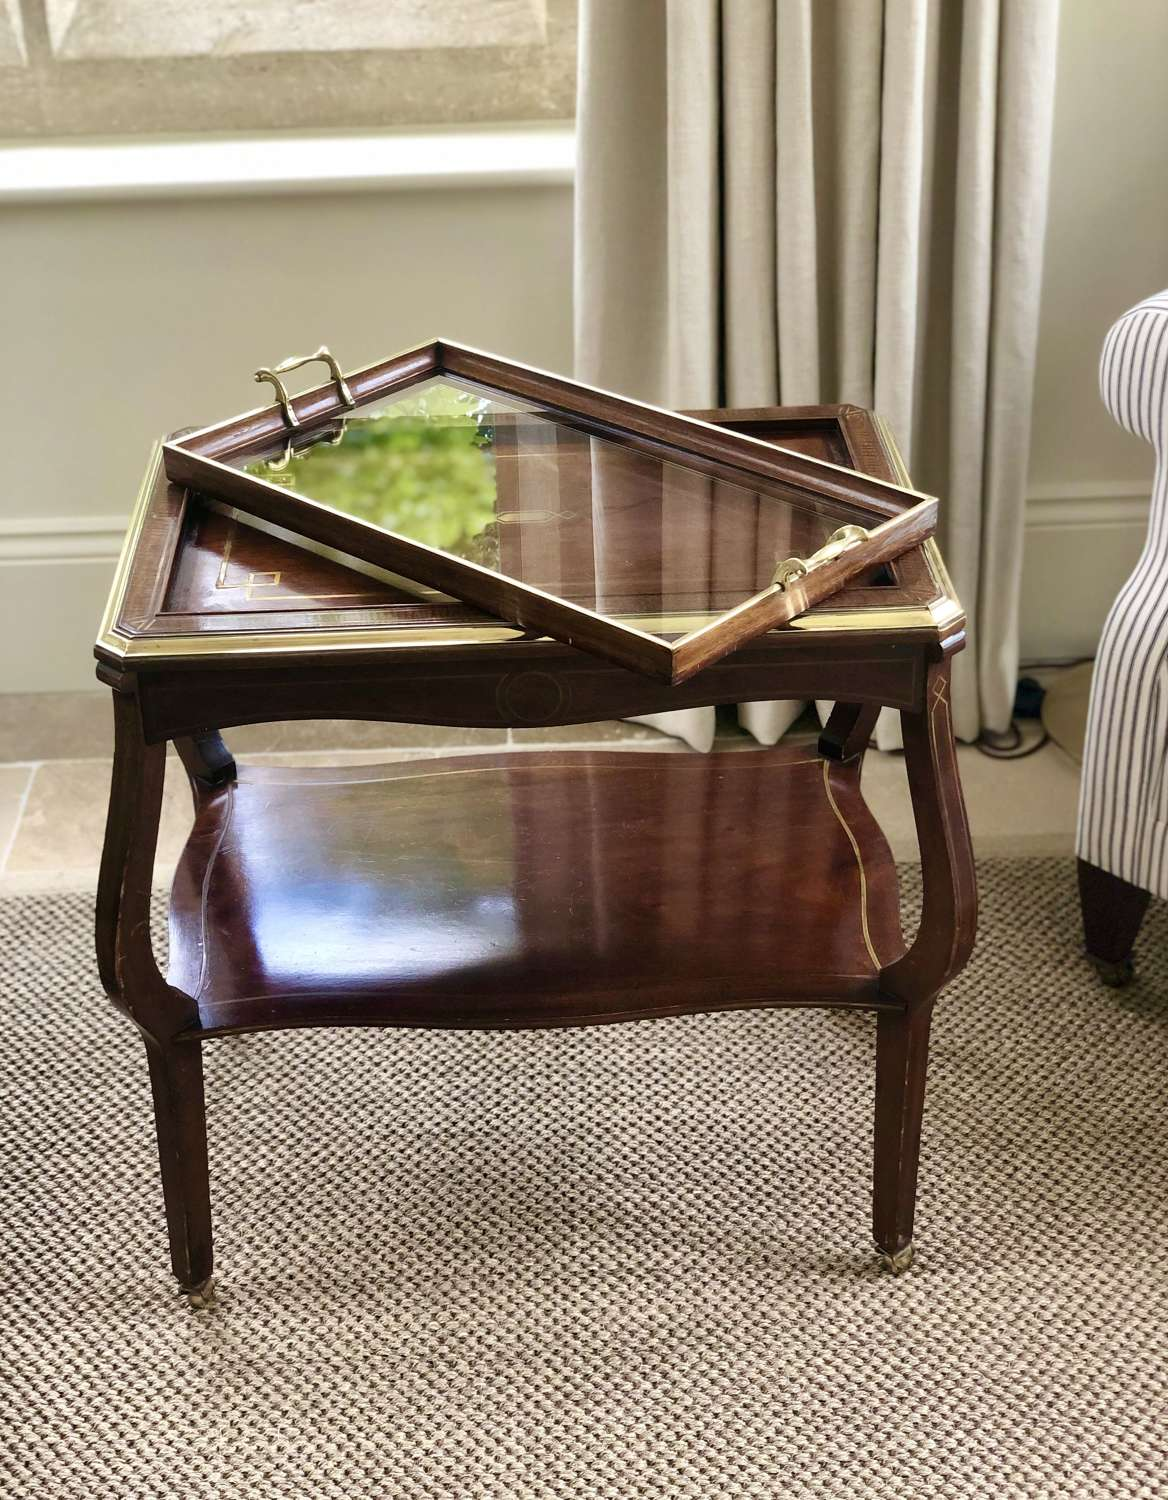 Exemplary Edwardian mahogany brass inlaid serving or drinks trolley